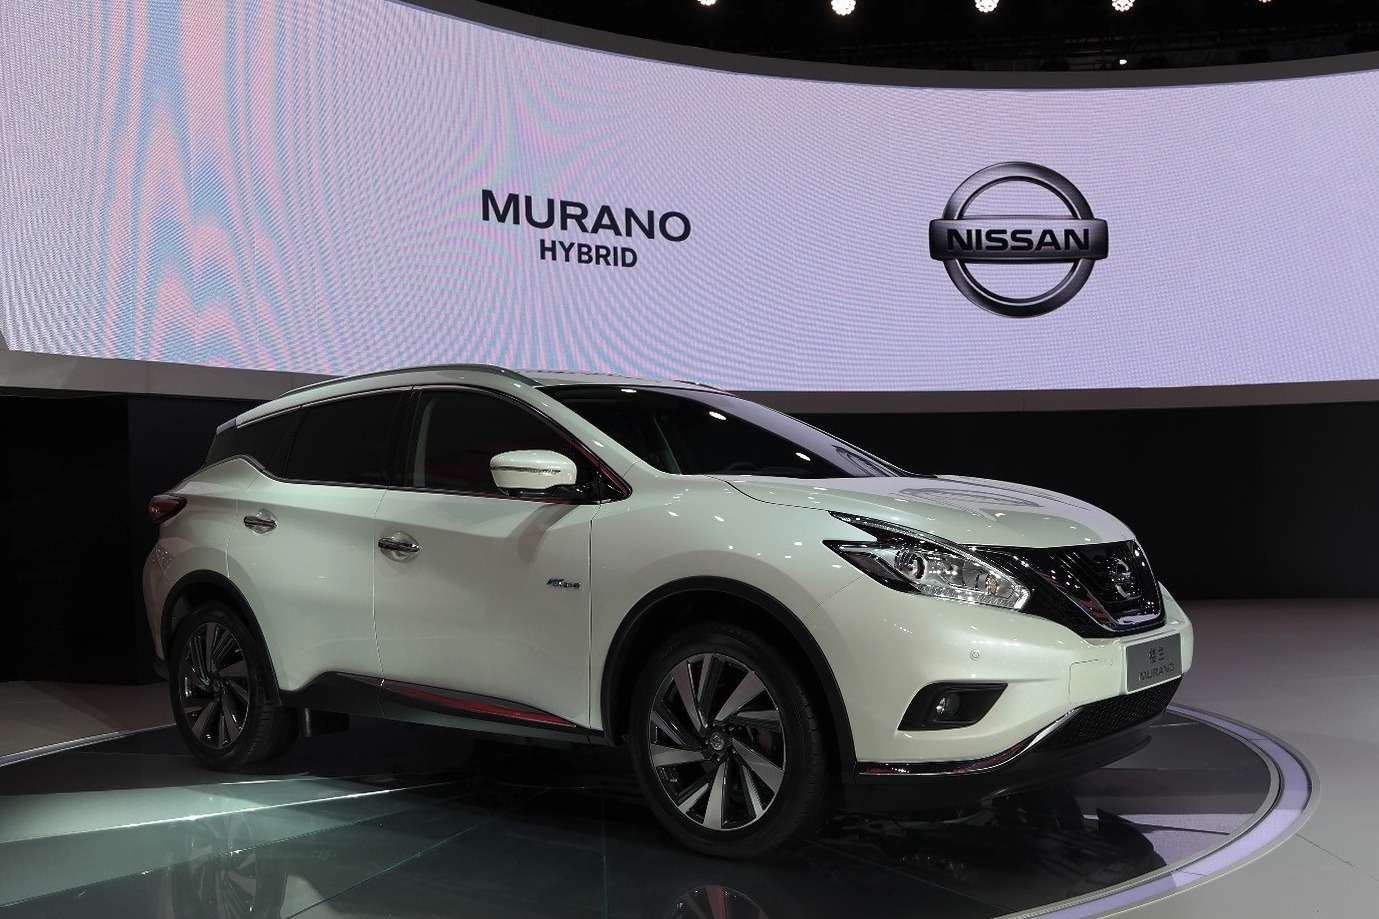 world-premiere-for-2016-nissan-murano-hybrid-at-auto-shanghai-2015-live-photos_2